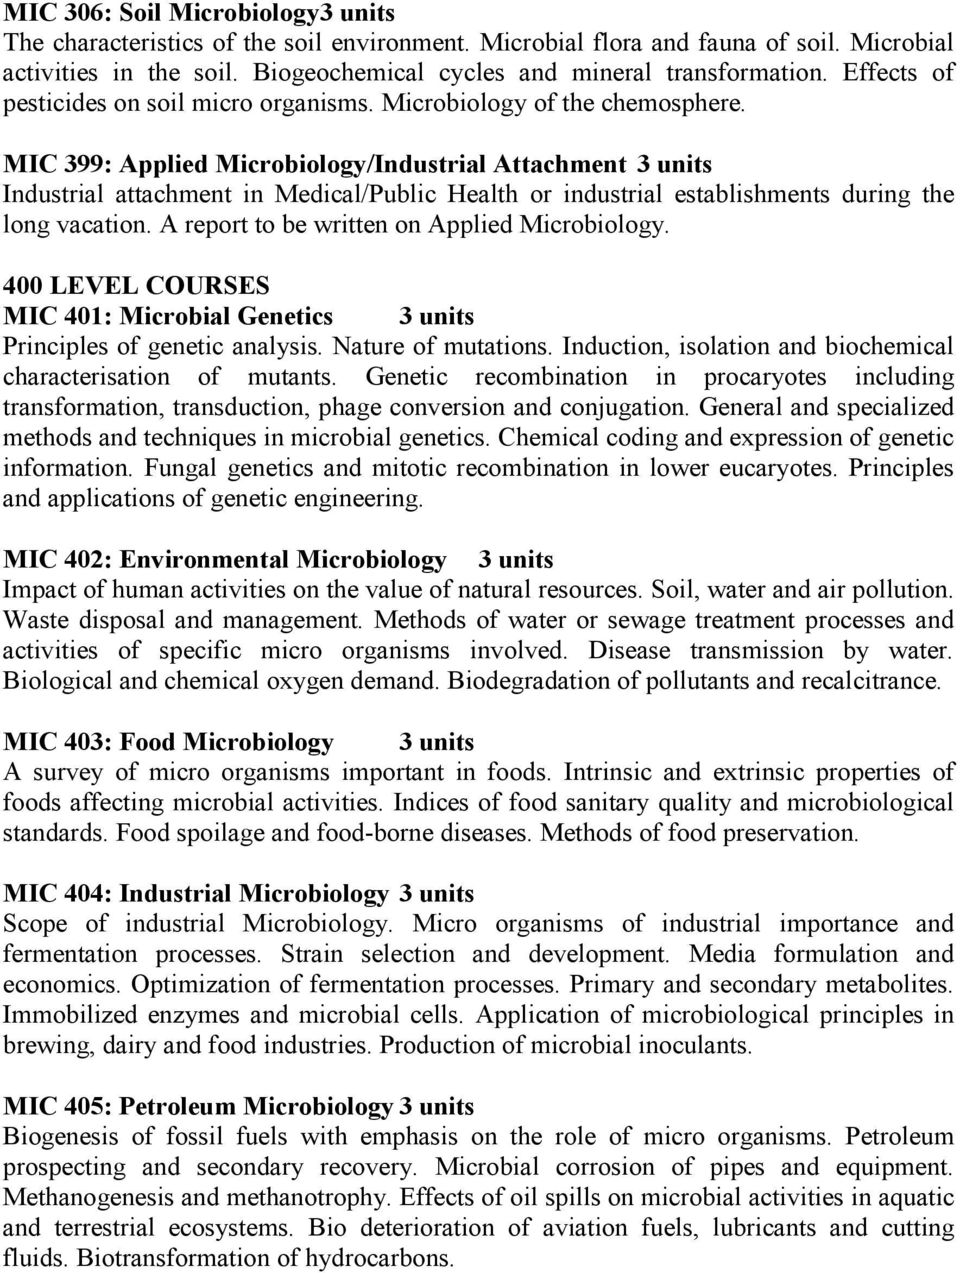 MIC 399: Applied Microbiology/Industrial Attachment 3 units Industrial attachment in Medical/Public Health or industrial establishments during the long vacation.